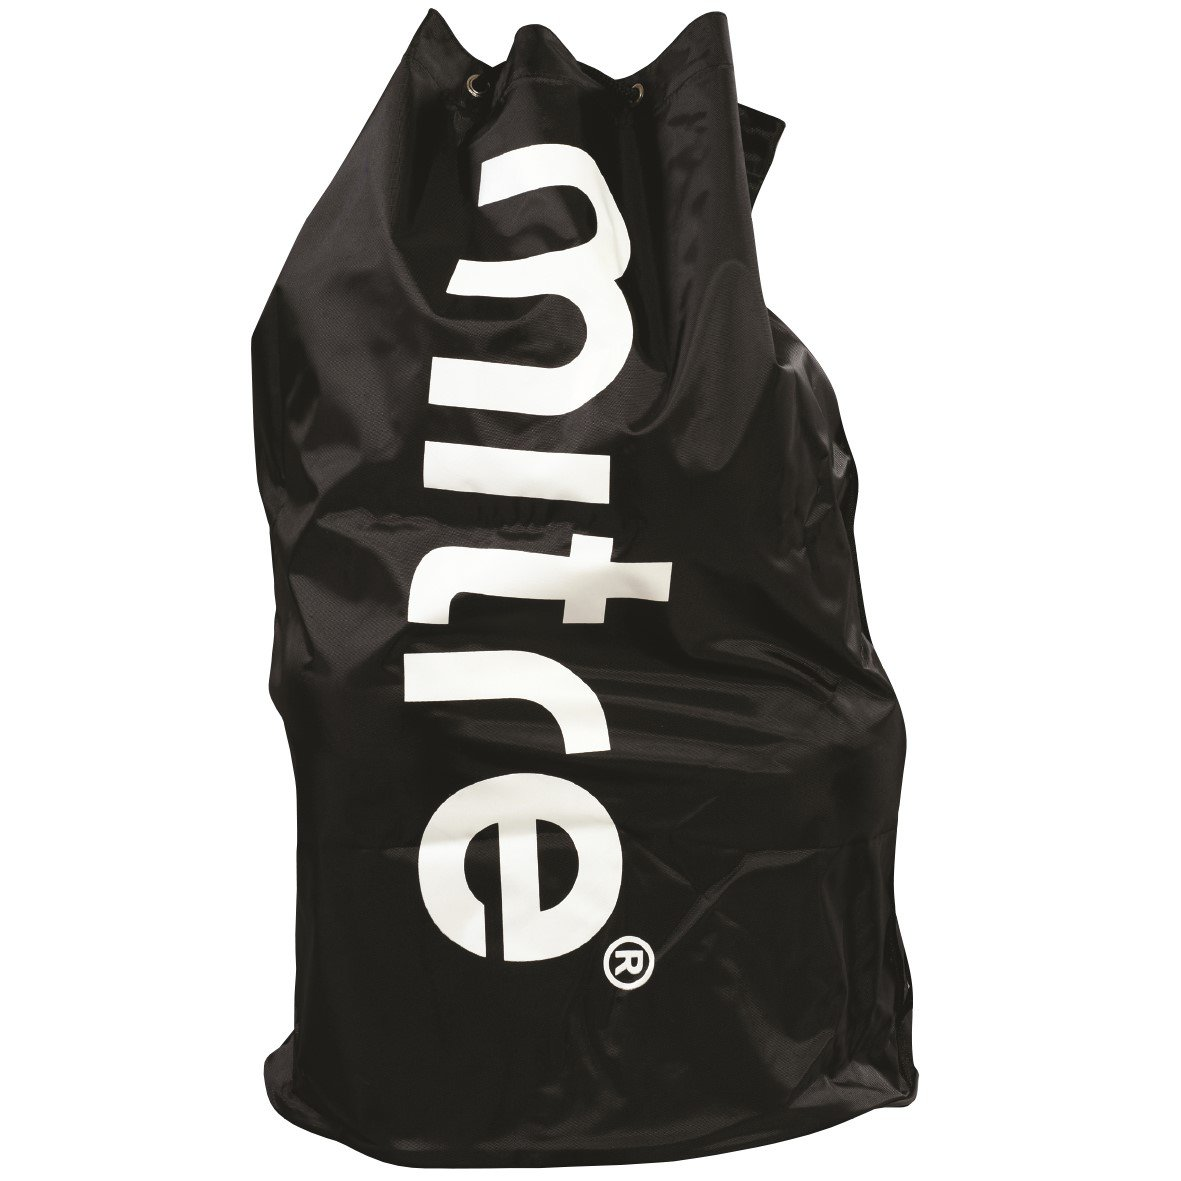 Mitre H8004 Jumbo Football Bag, Holds 20 Balls, Black